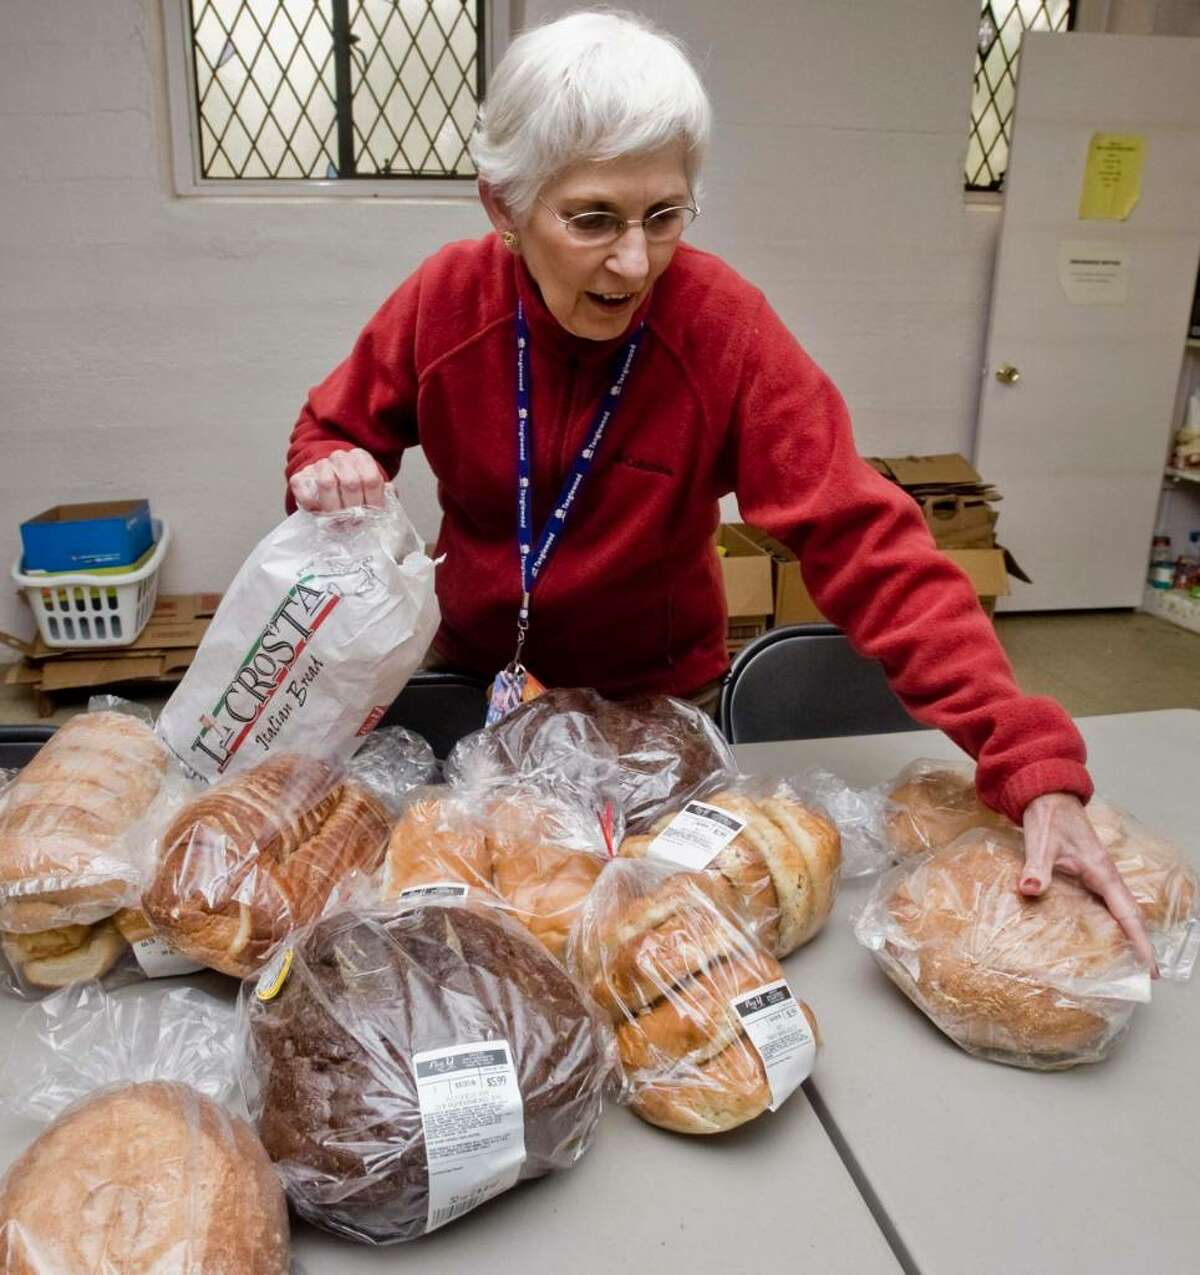 Barbara Lynch, a 5 year volunteer at the food pantry held at St. John's Episcopal Church in Newtown, organizes bread donated from the Big Y supermarket. Tuesday, Nov. 10, 2009